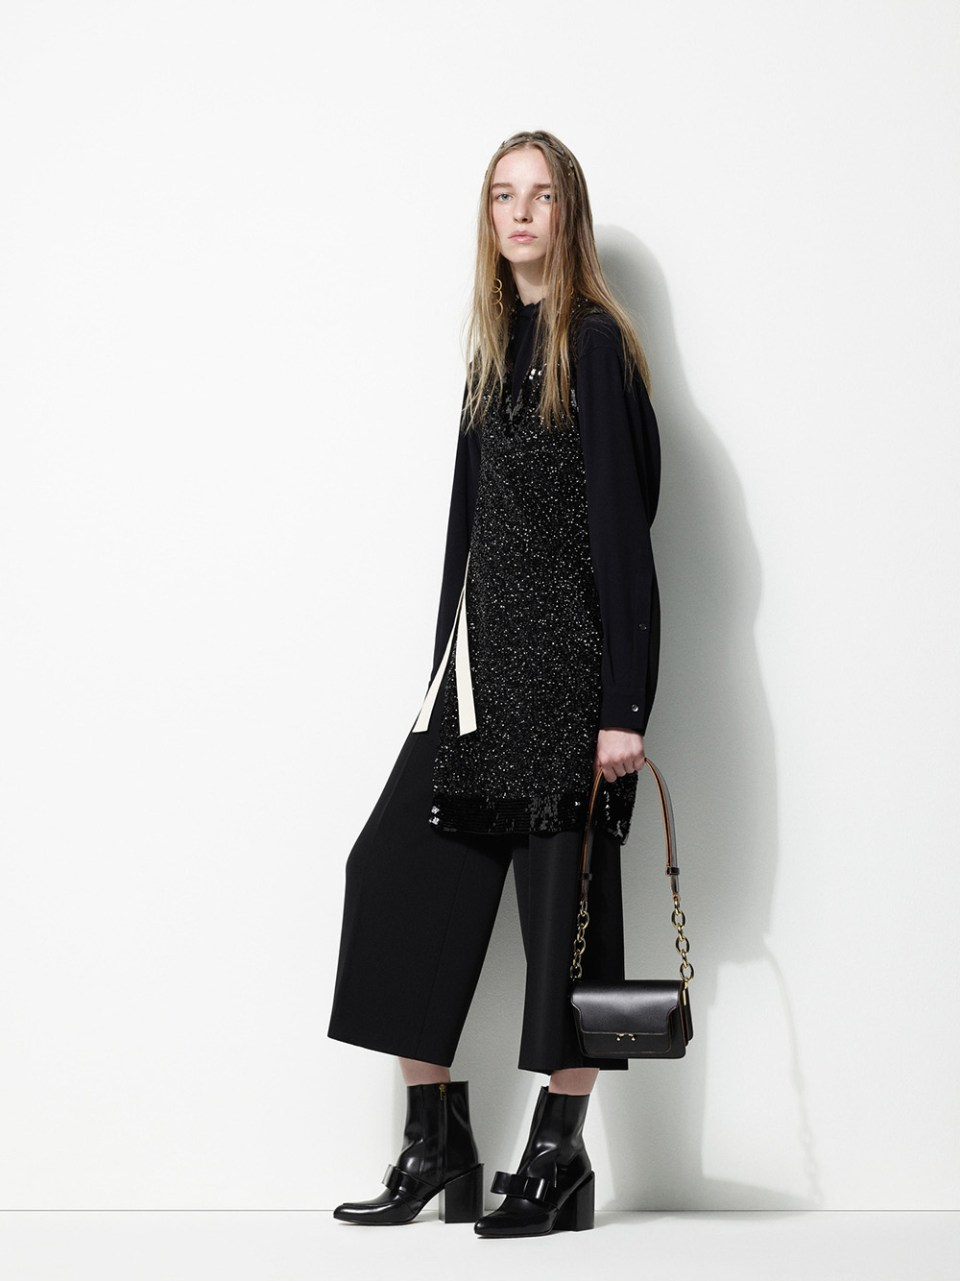 marni_pre_fall_2016_lookbook_23_jpg_4884_north_1382x_black